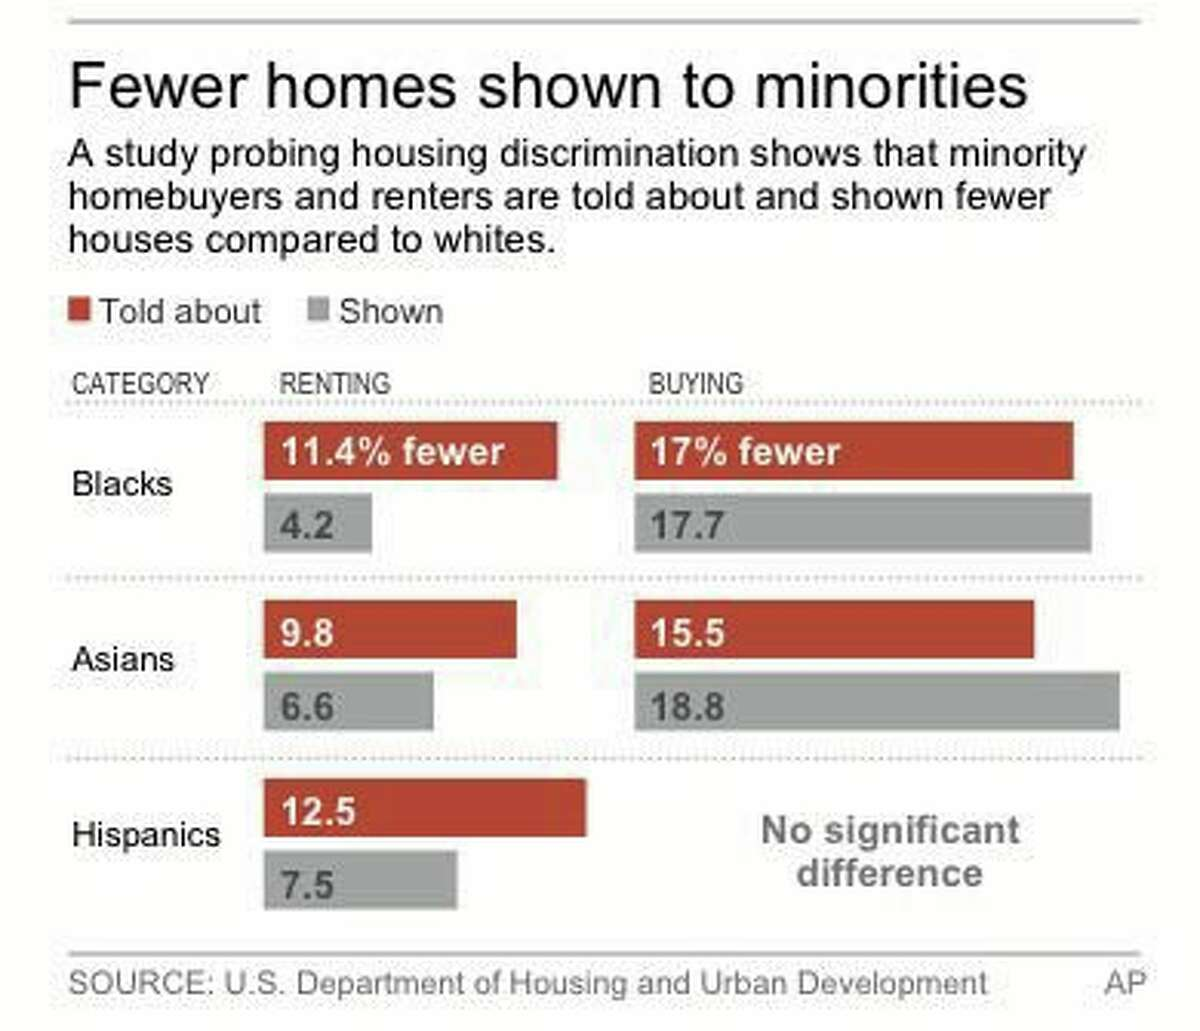 Graphic from 2013 shows percentages of homes shown to minorities compared to whites.